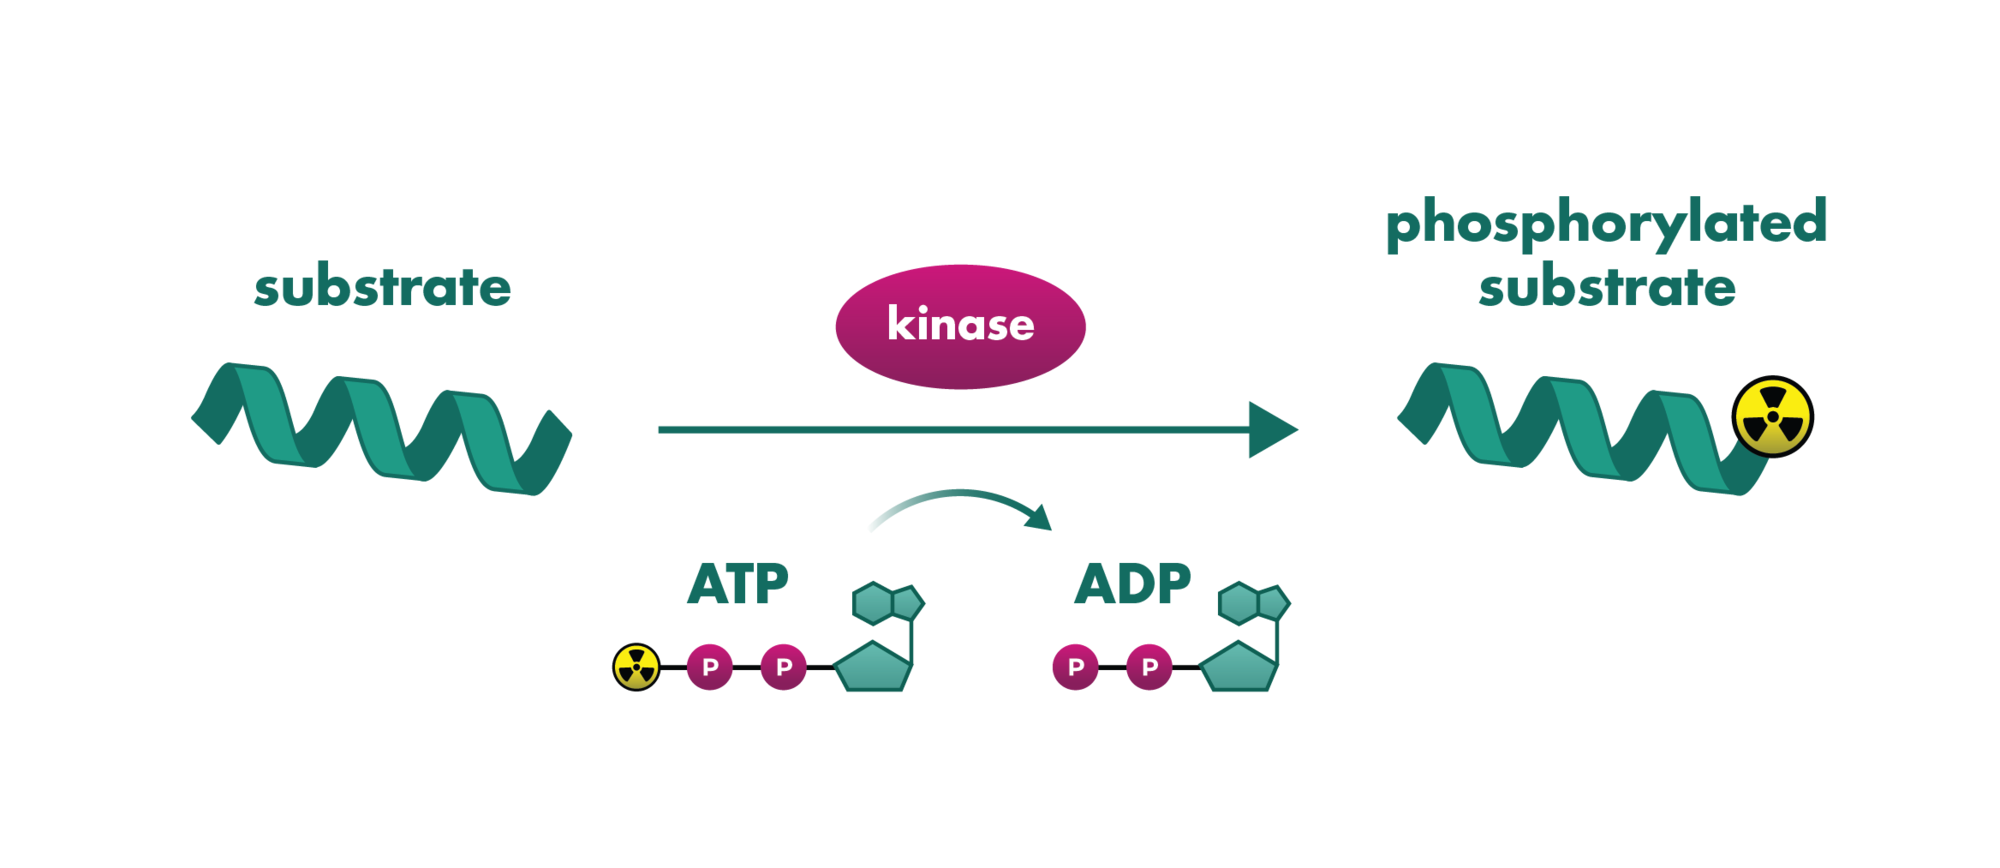 Principle of radiometric kinase activity assay. 33 phosphate is transferred onto the substrate. The radioactive kinase substrate is than quantified